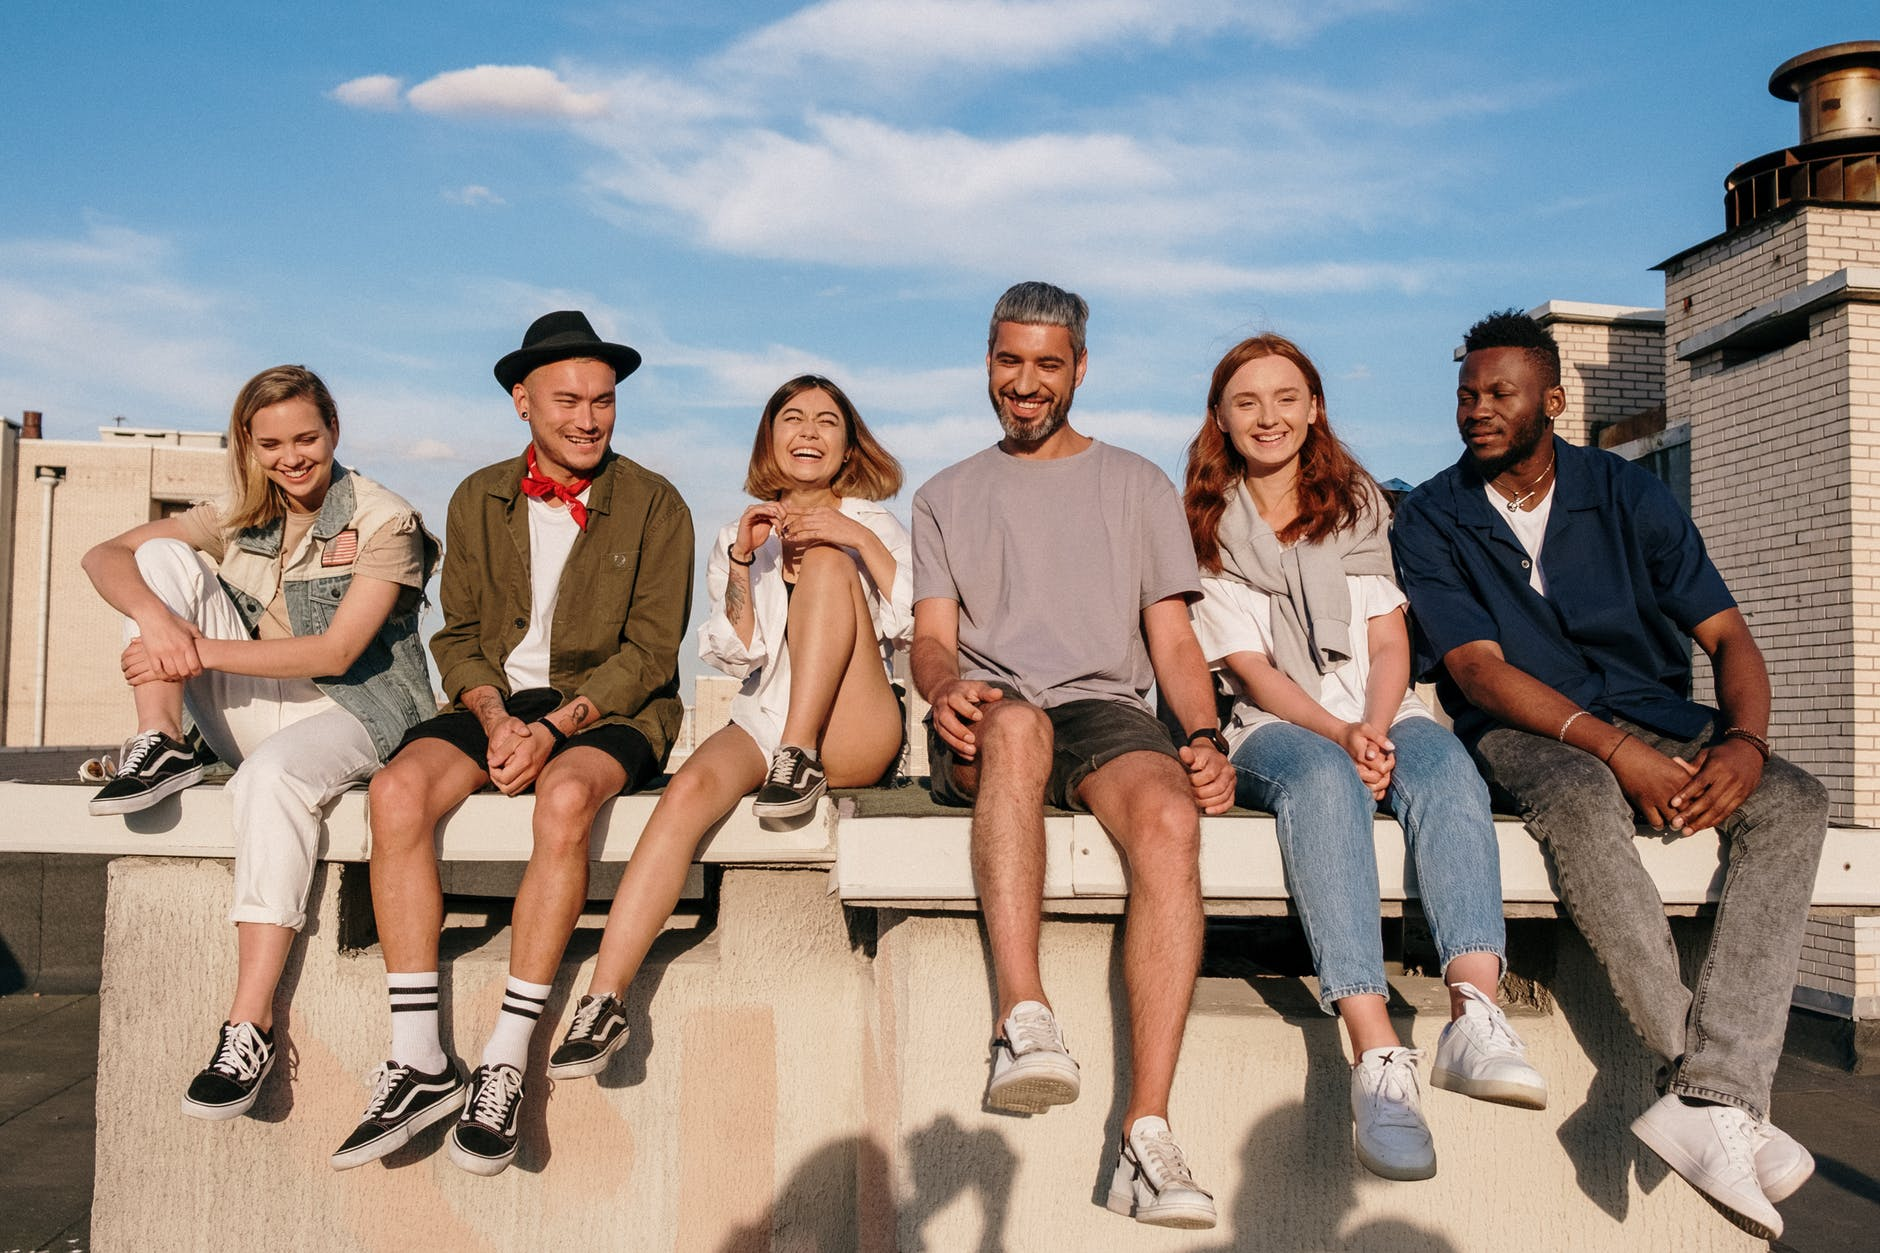 group of people sitting on concrete bench